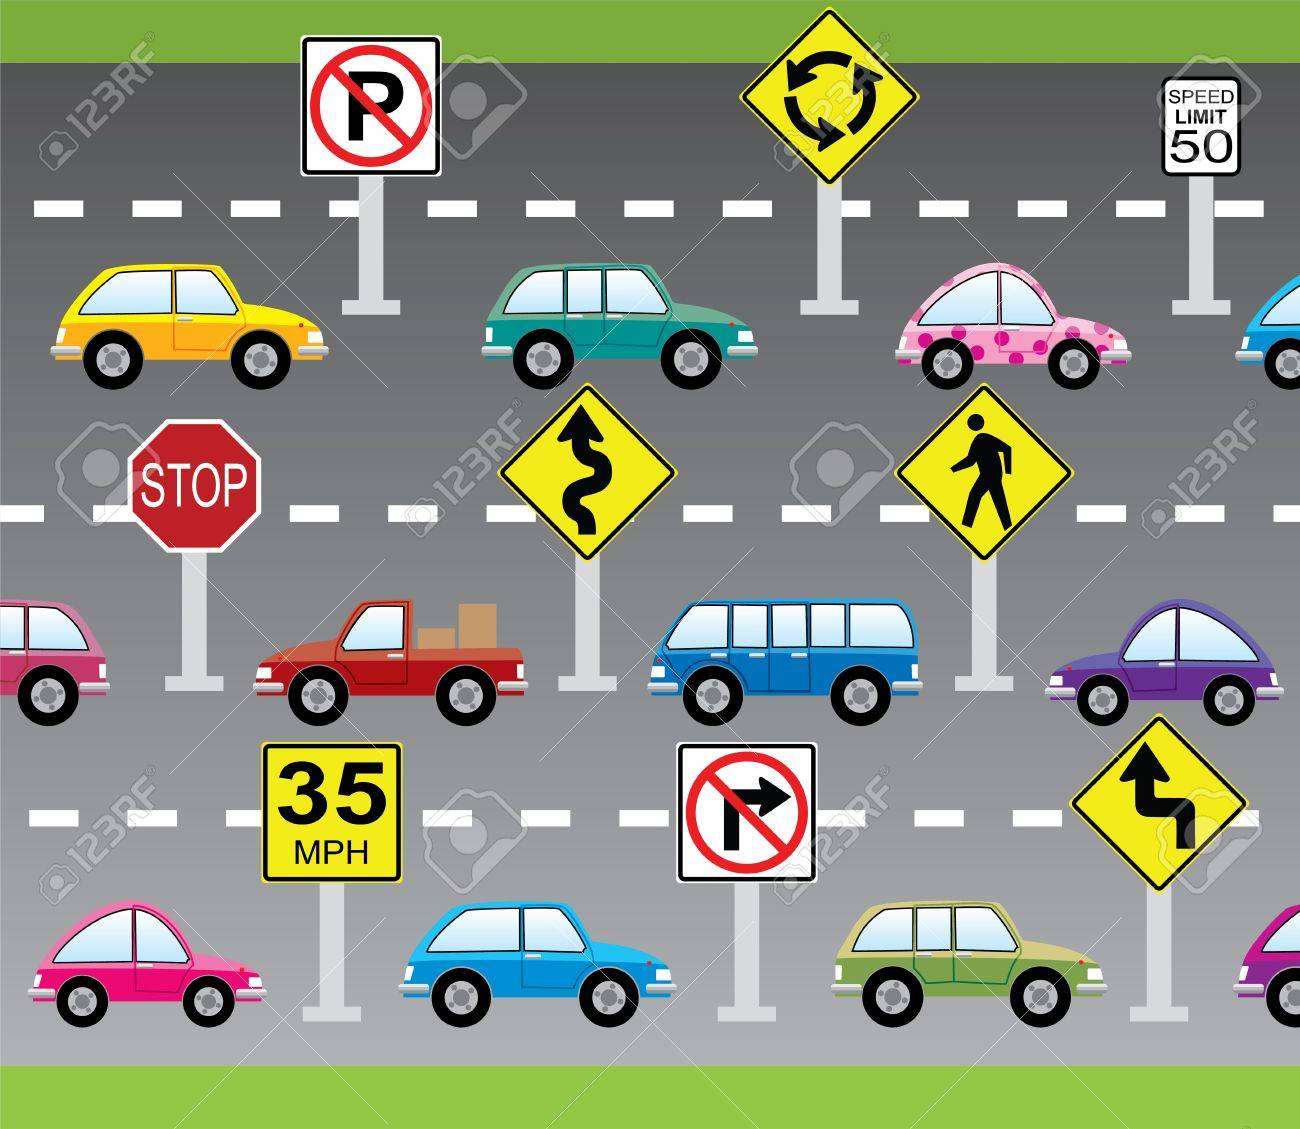 vector illustration of cars and road signs Stock Vector - 12496961